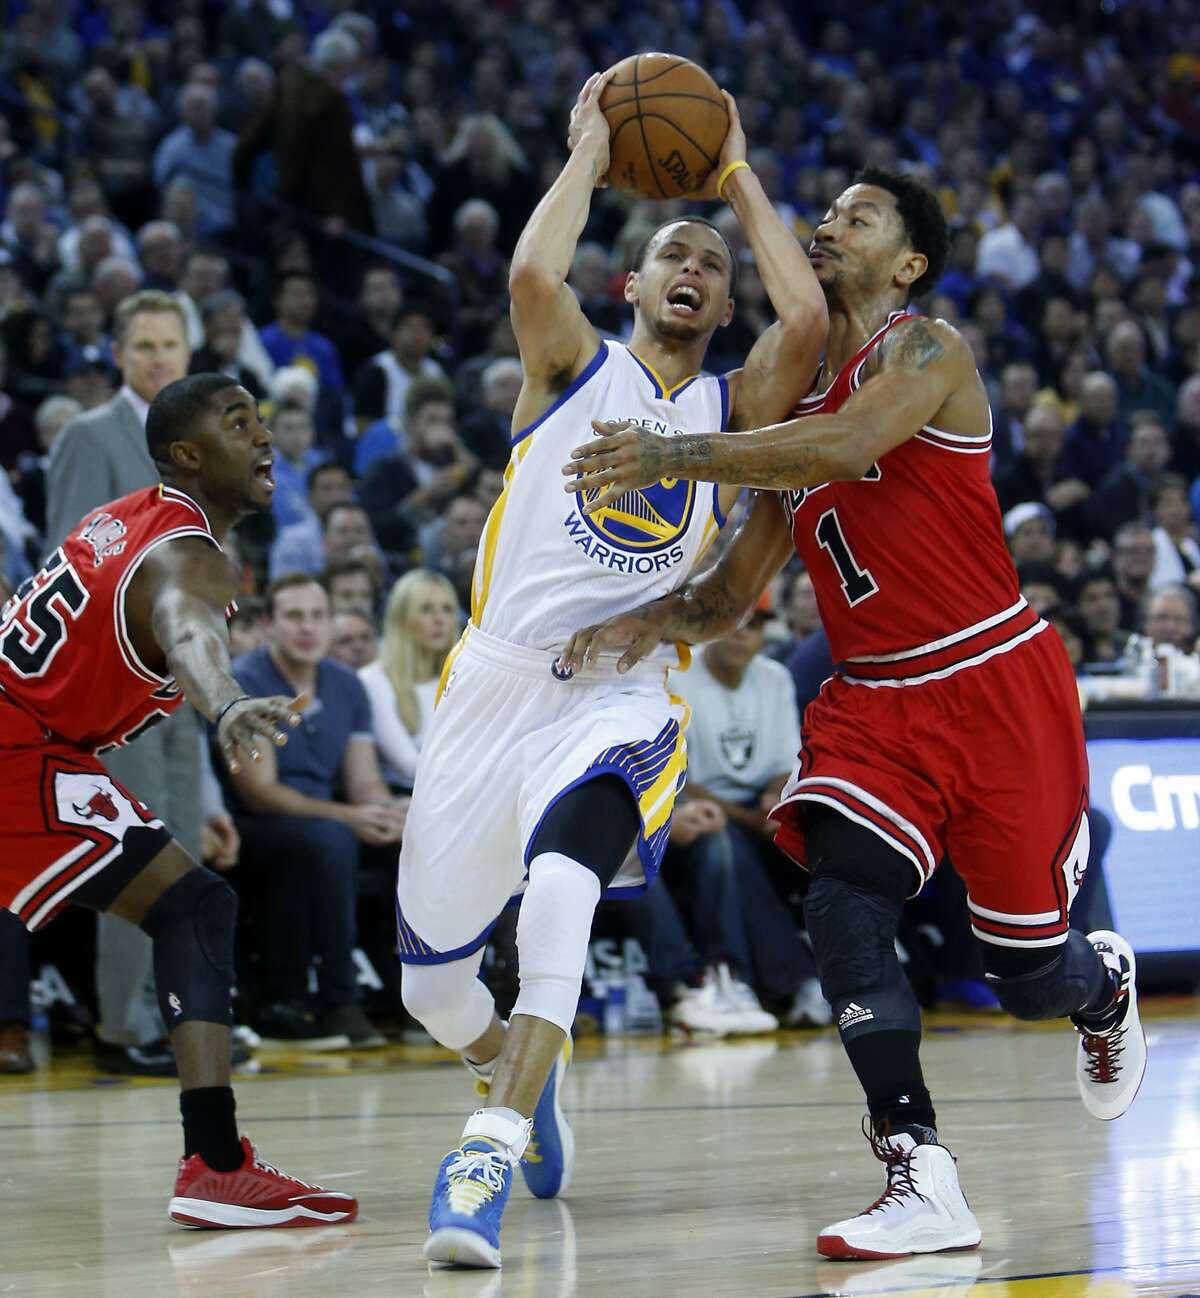 The Golden State Warriors' Stephen Curry drives against the defense of Chicago Bulls' Derrick Rose and E'Twaun Moore in 1st quarter during NBA game at Oracle Arena in Oakland, Calif., on Tuesday, January 27, 2015.